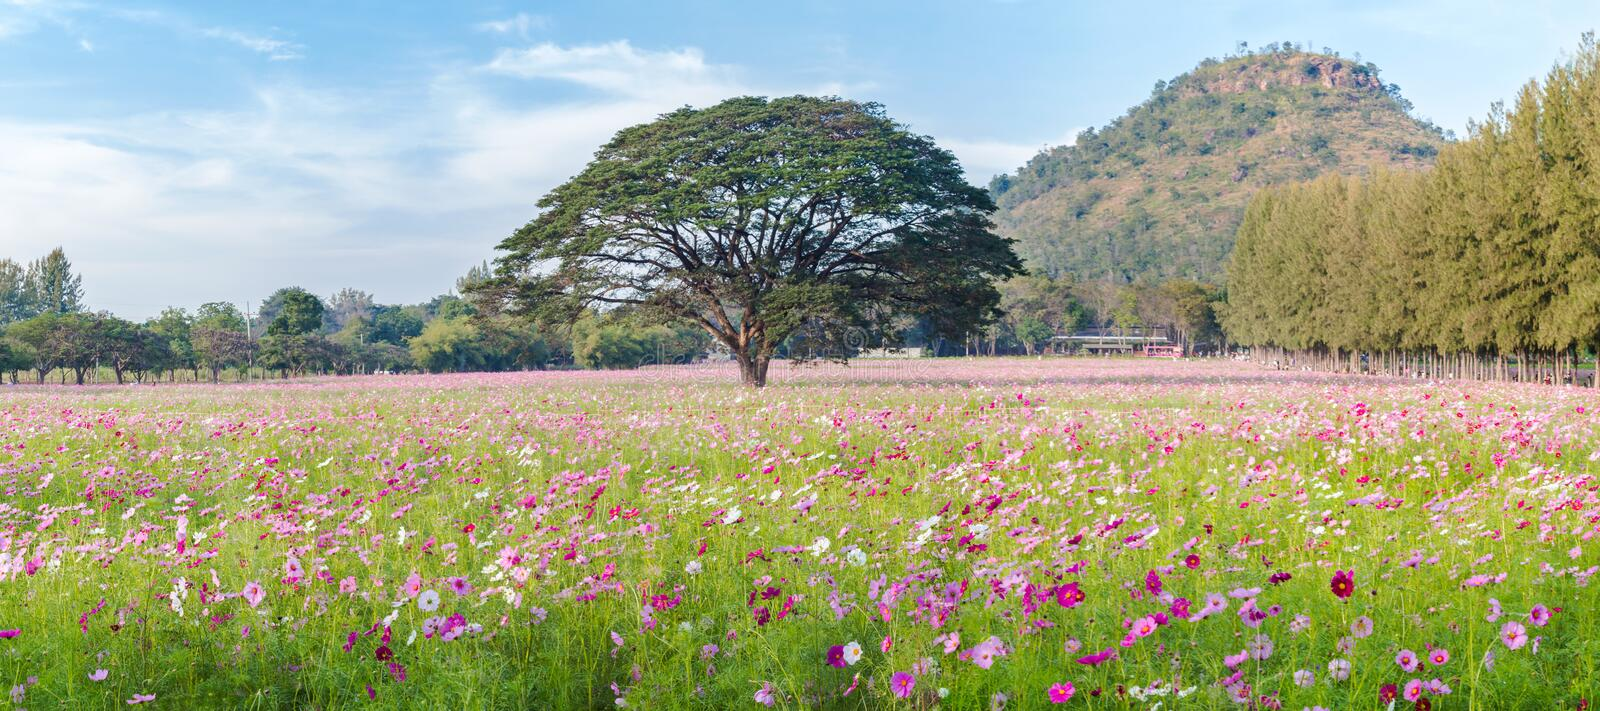 Beautiful Cosmos flowers field and tree with mountain and blue sky, Landscape photo stock photo